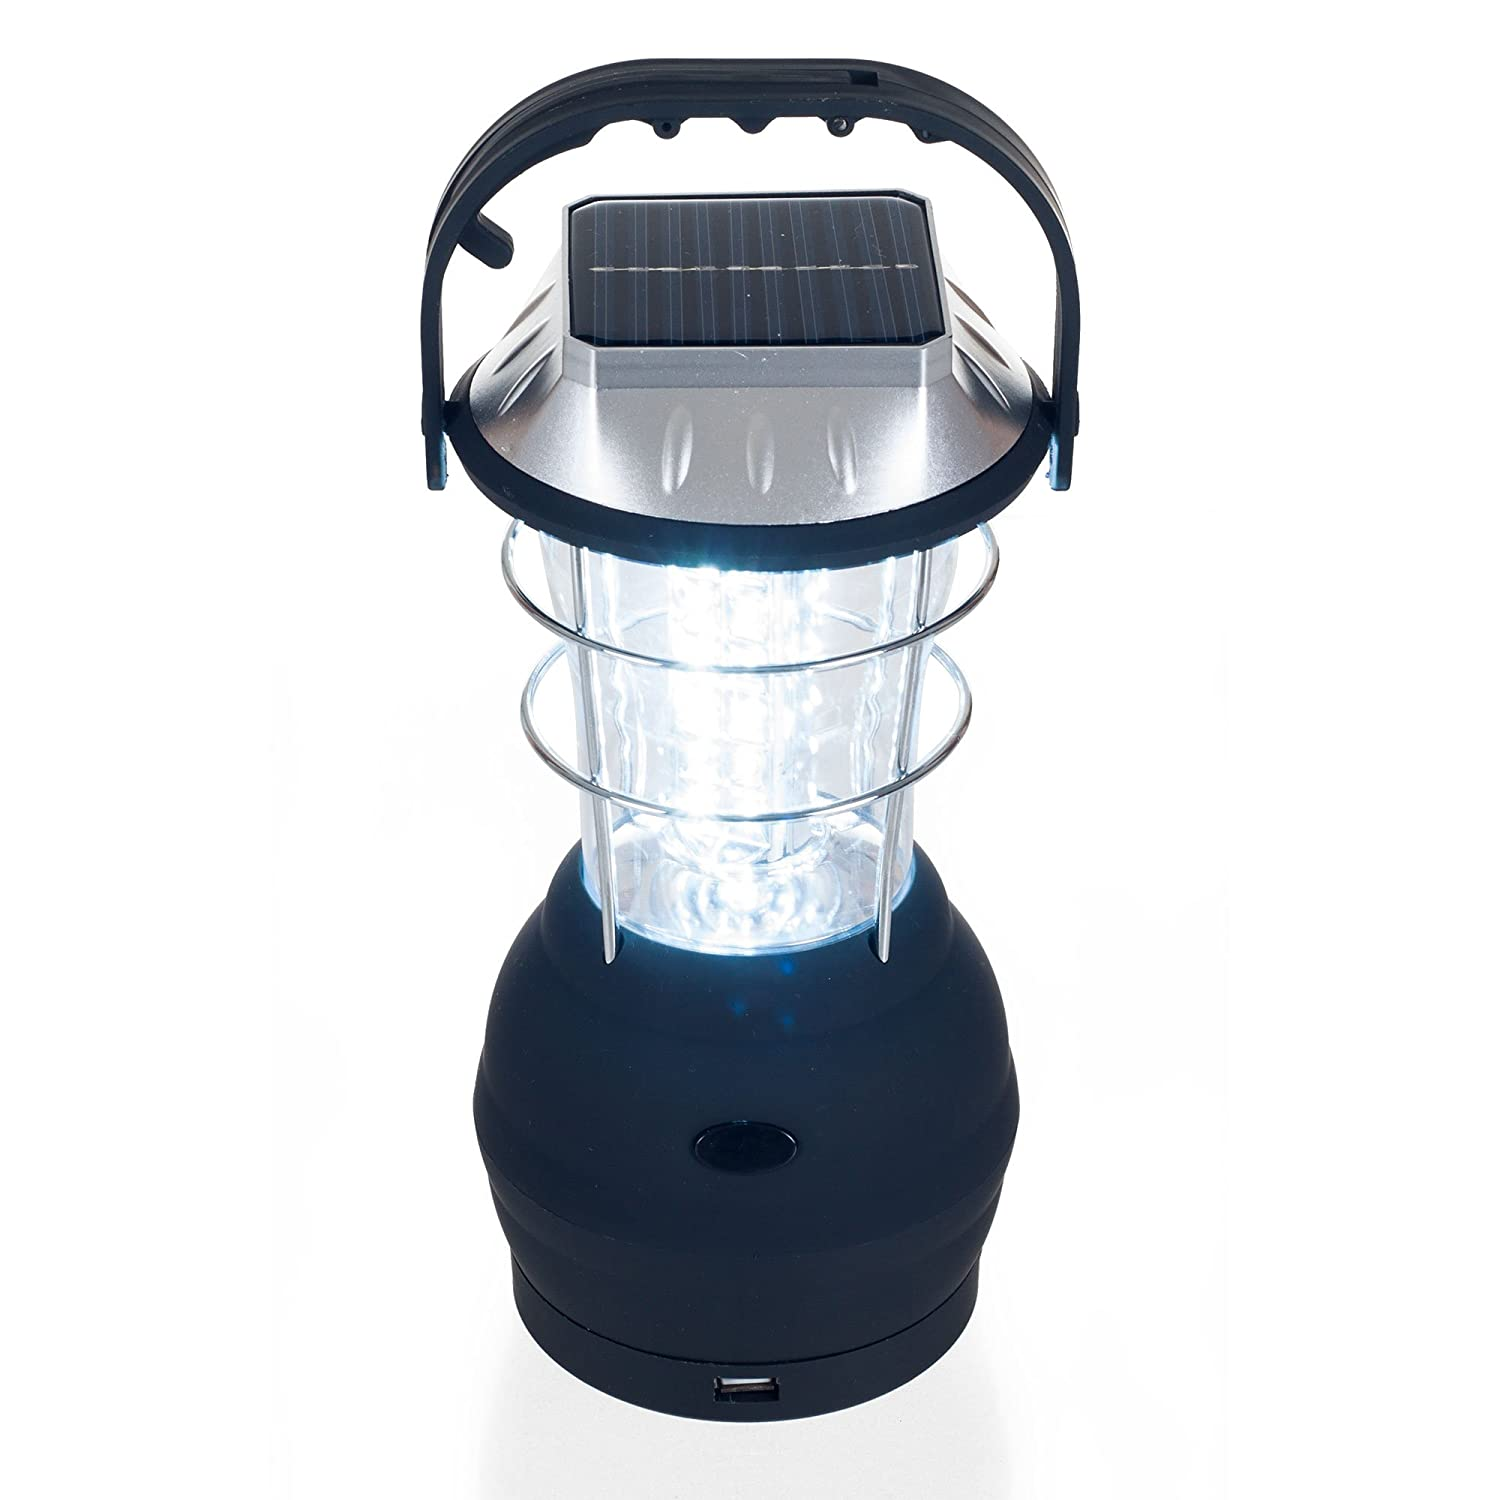 Whetstone 36 LED Solar and Dynamo Powered Camping Lantern 75-SL126